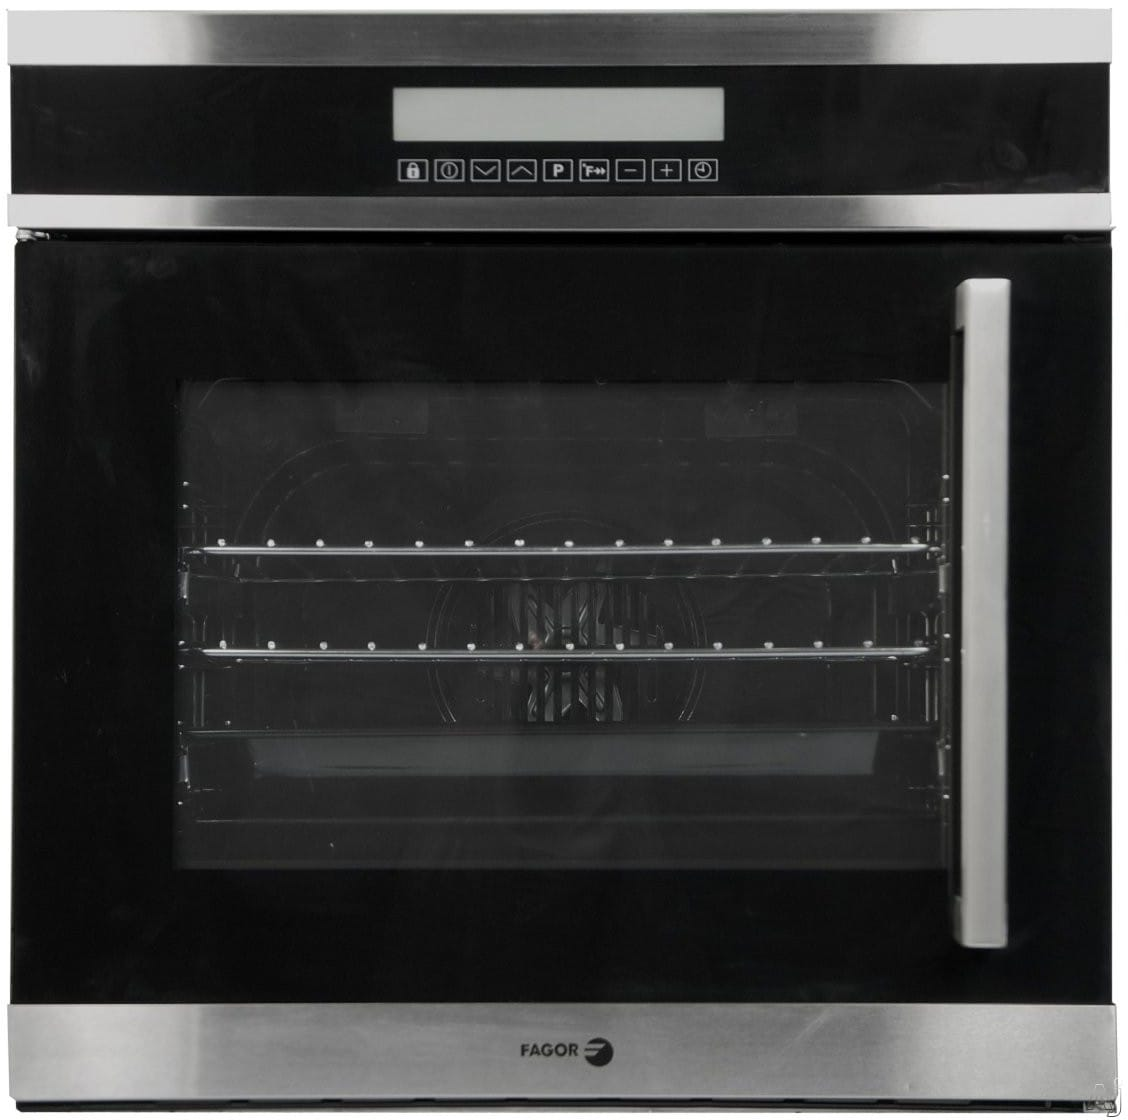 Fagor 6ha200tlx 24 Inch Single Electric Wall Oven With 1